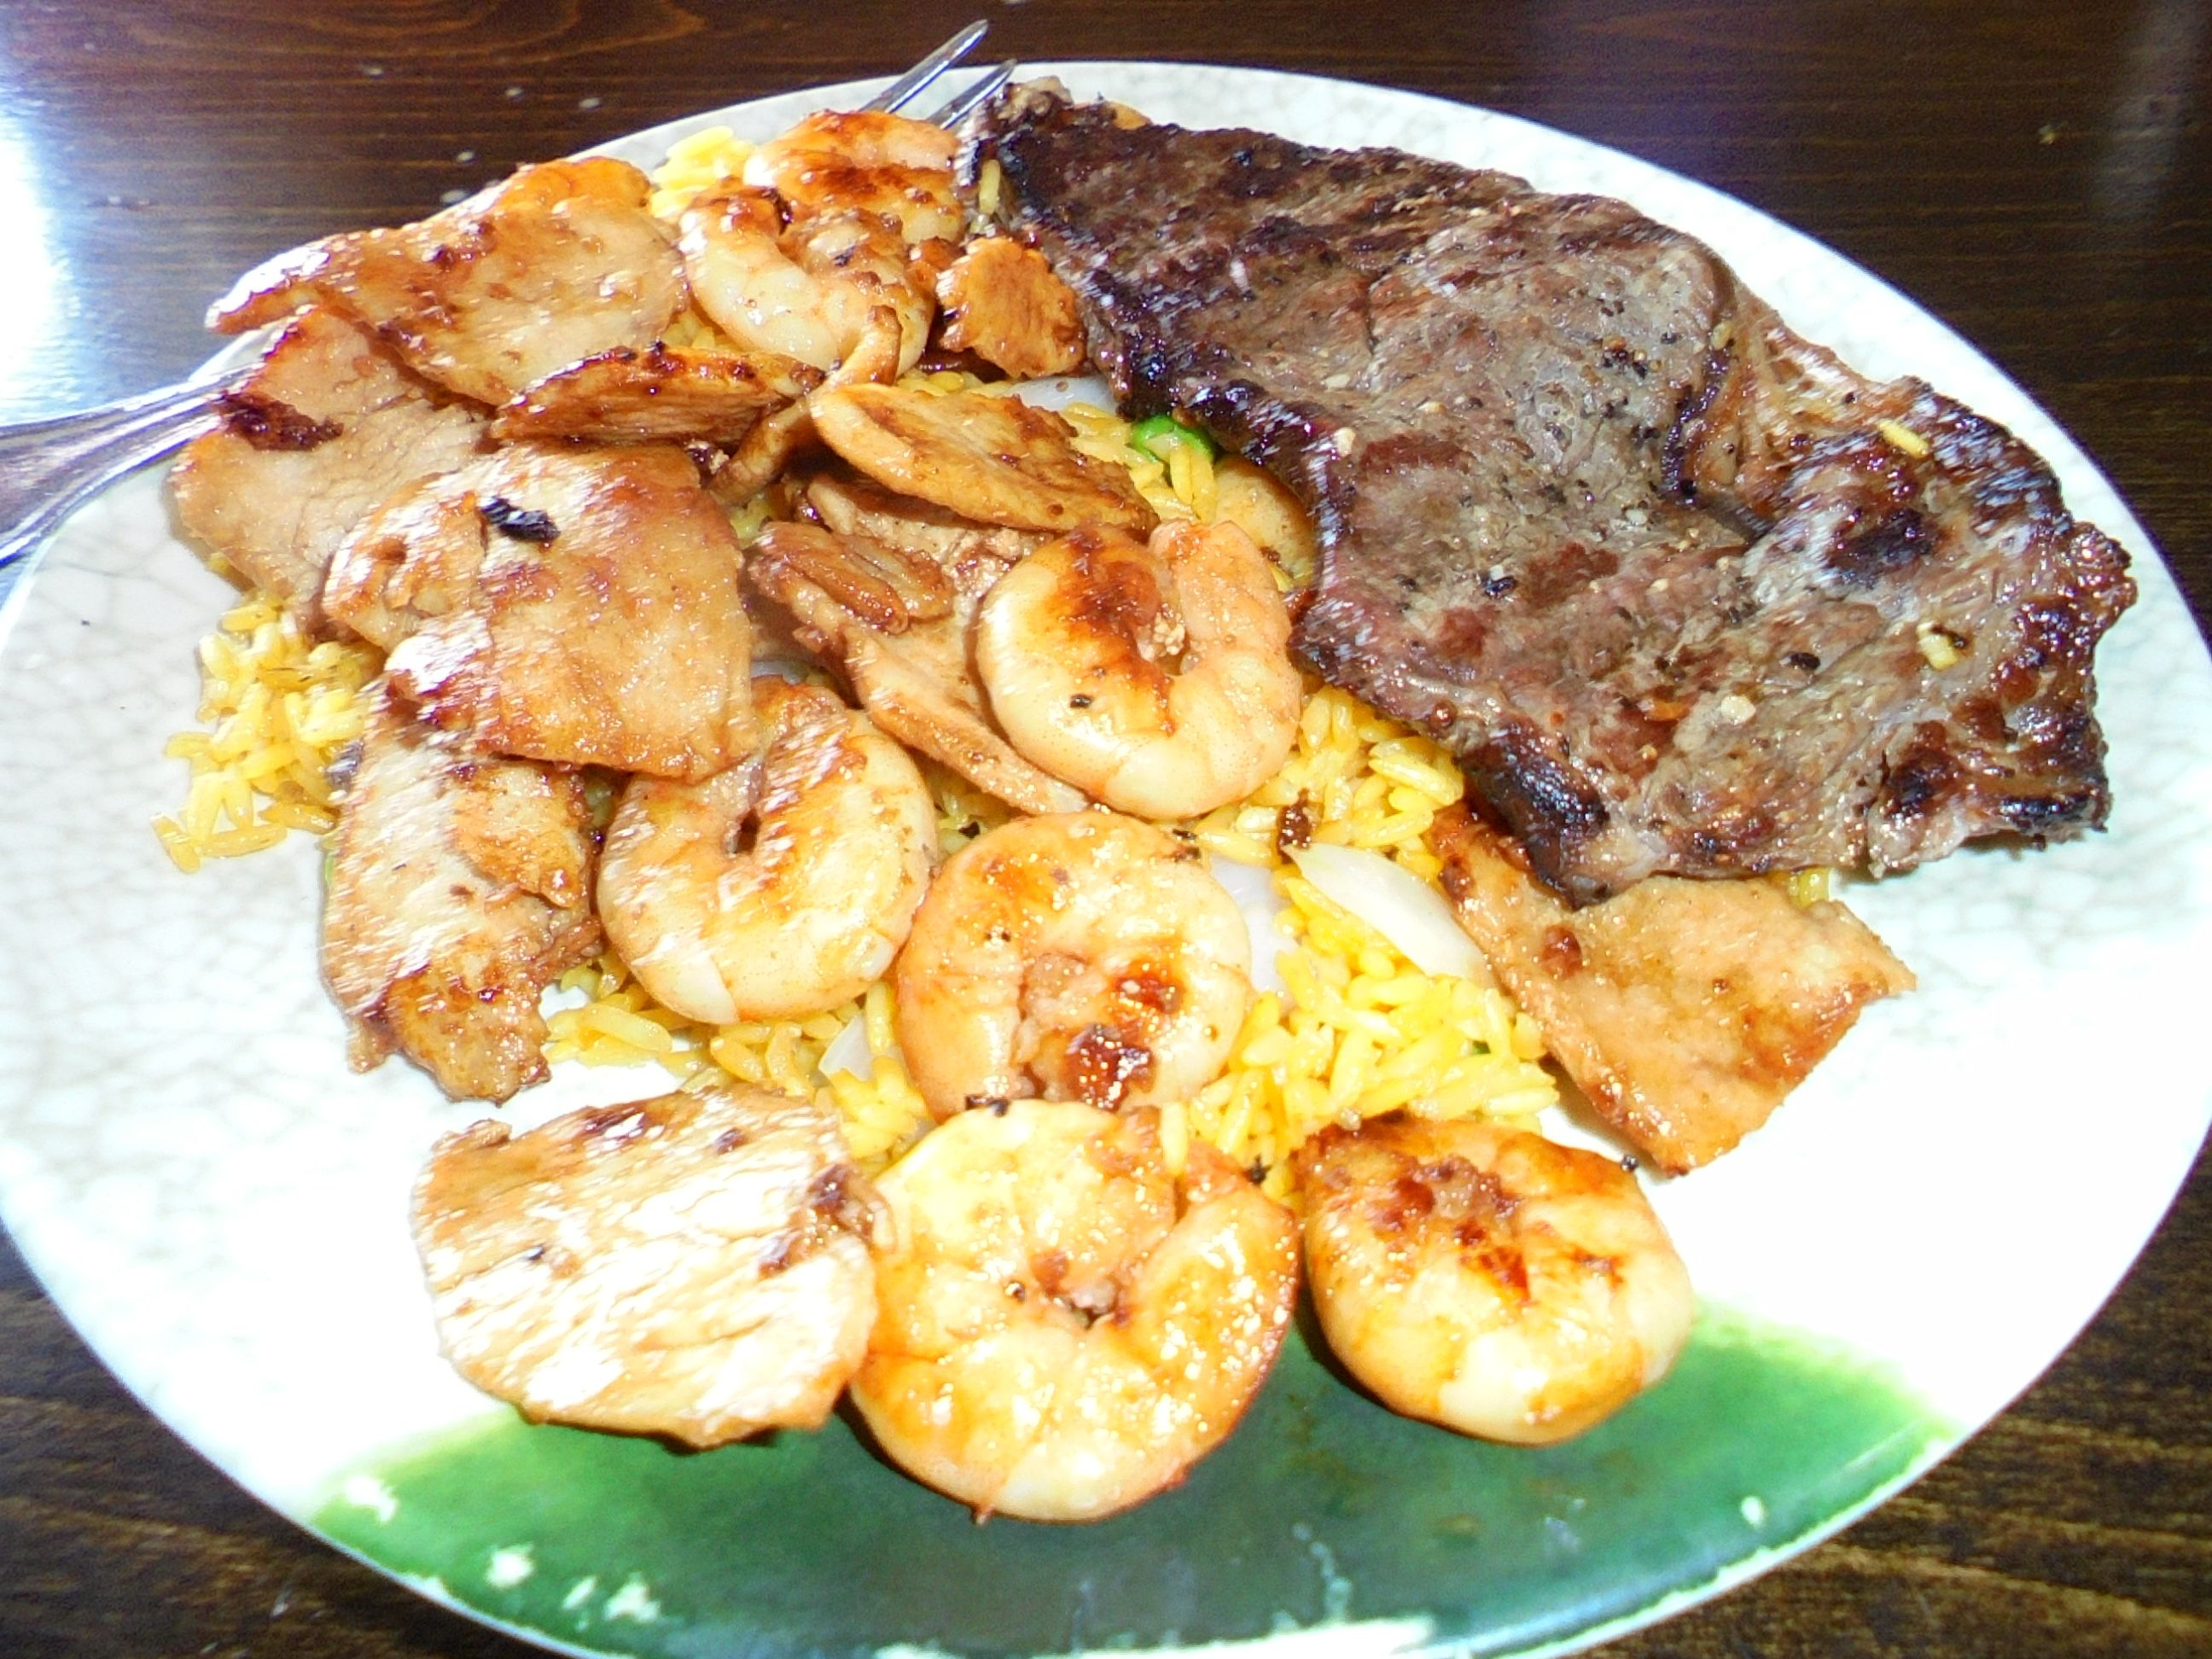 #Shrimp, #GrilledSteak, and #Chicken in #Hibachisauce over #friedrice and #onions - www.drewrynewsnetwork.com